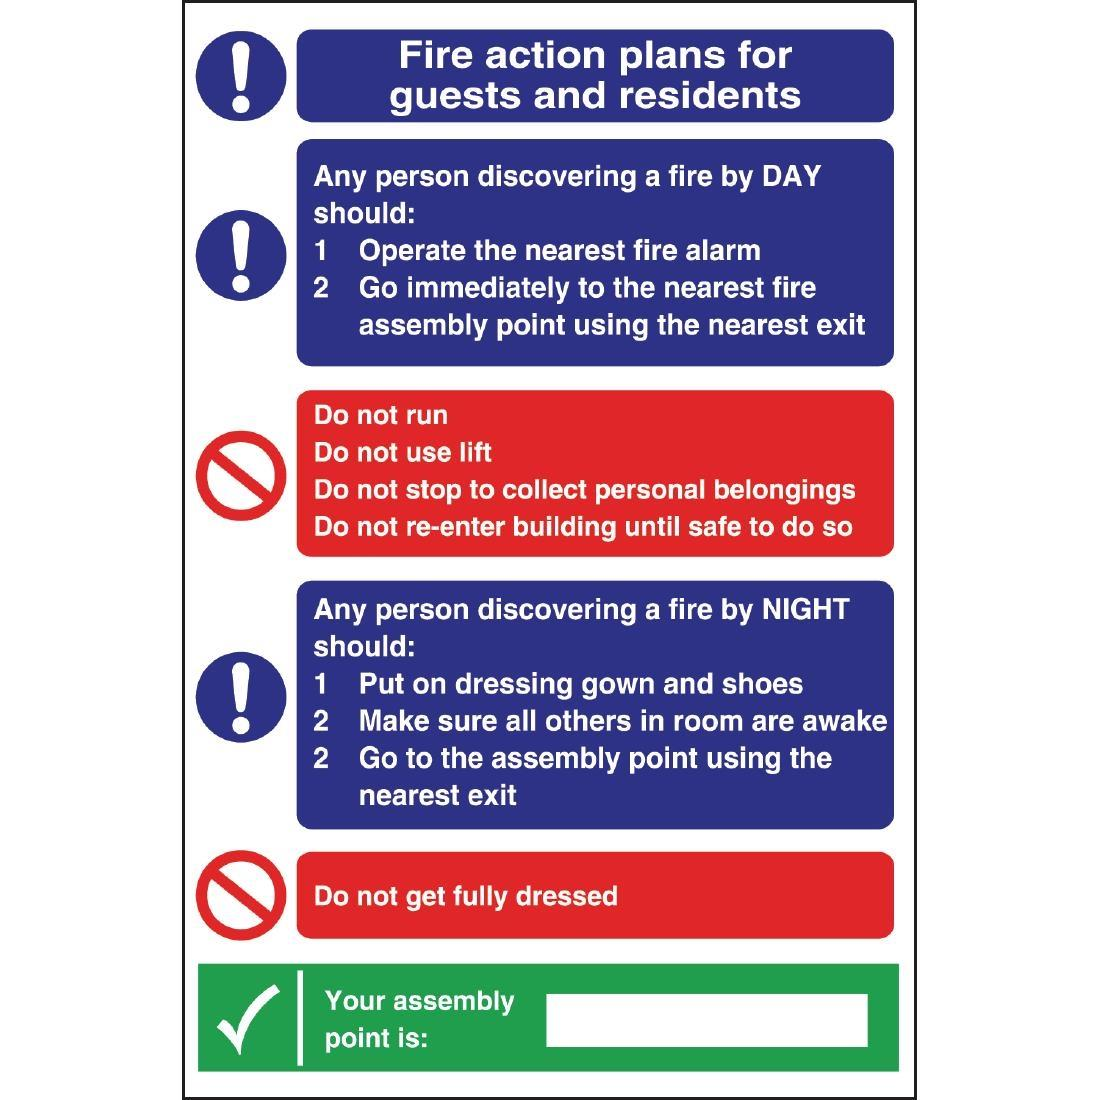 W218 - Fire Action Plan Sign For Guests & Residents